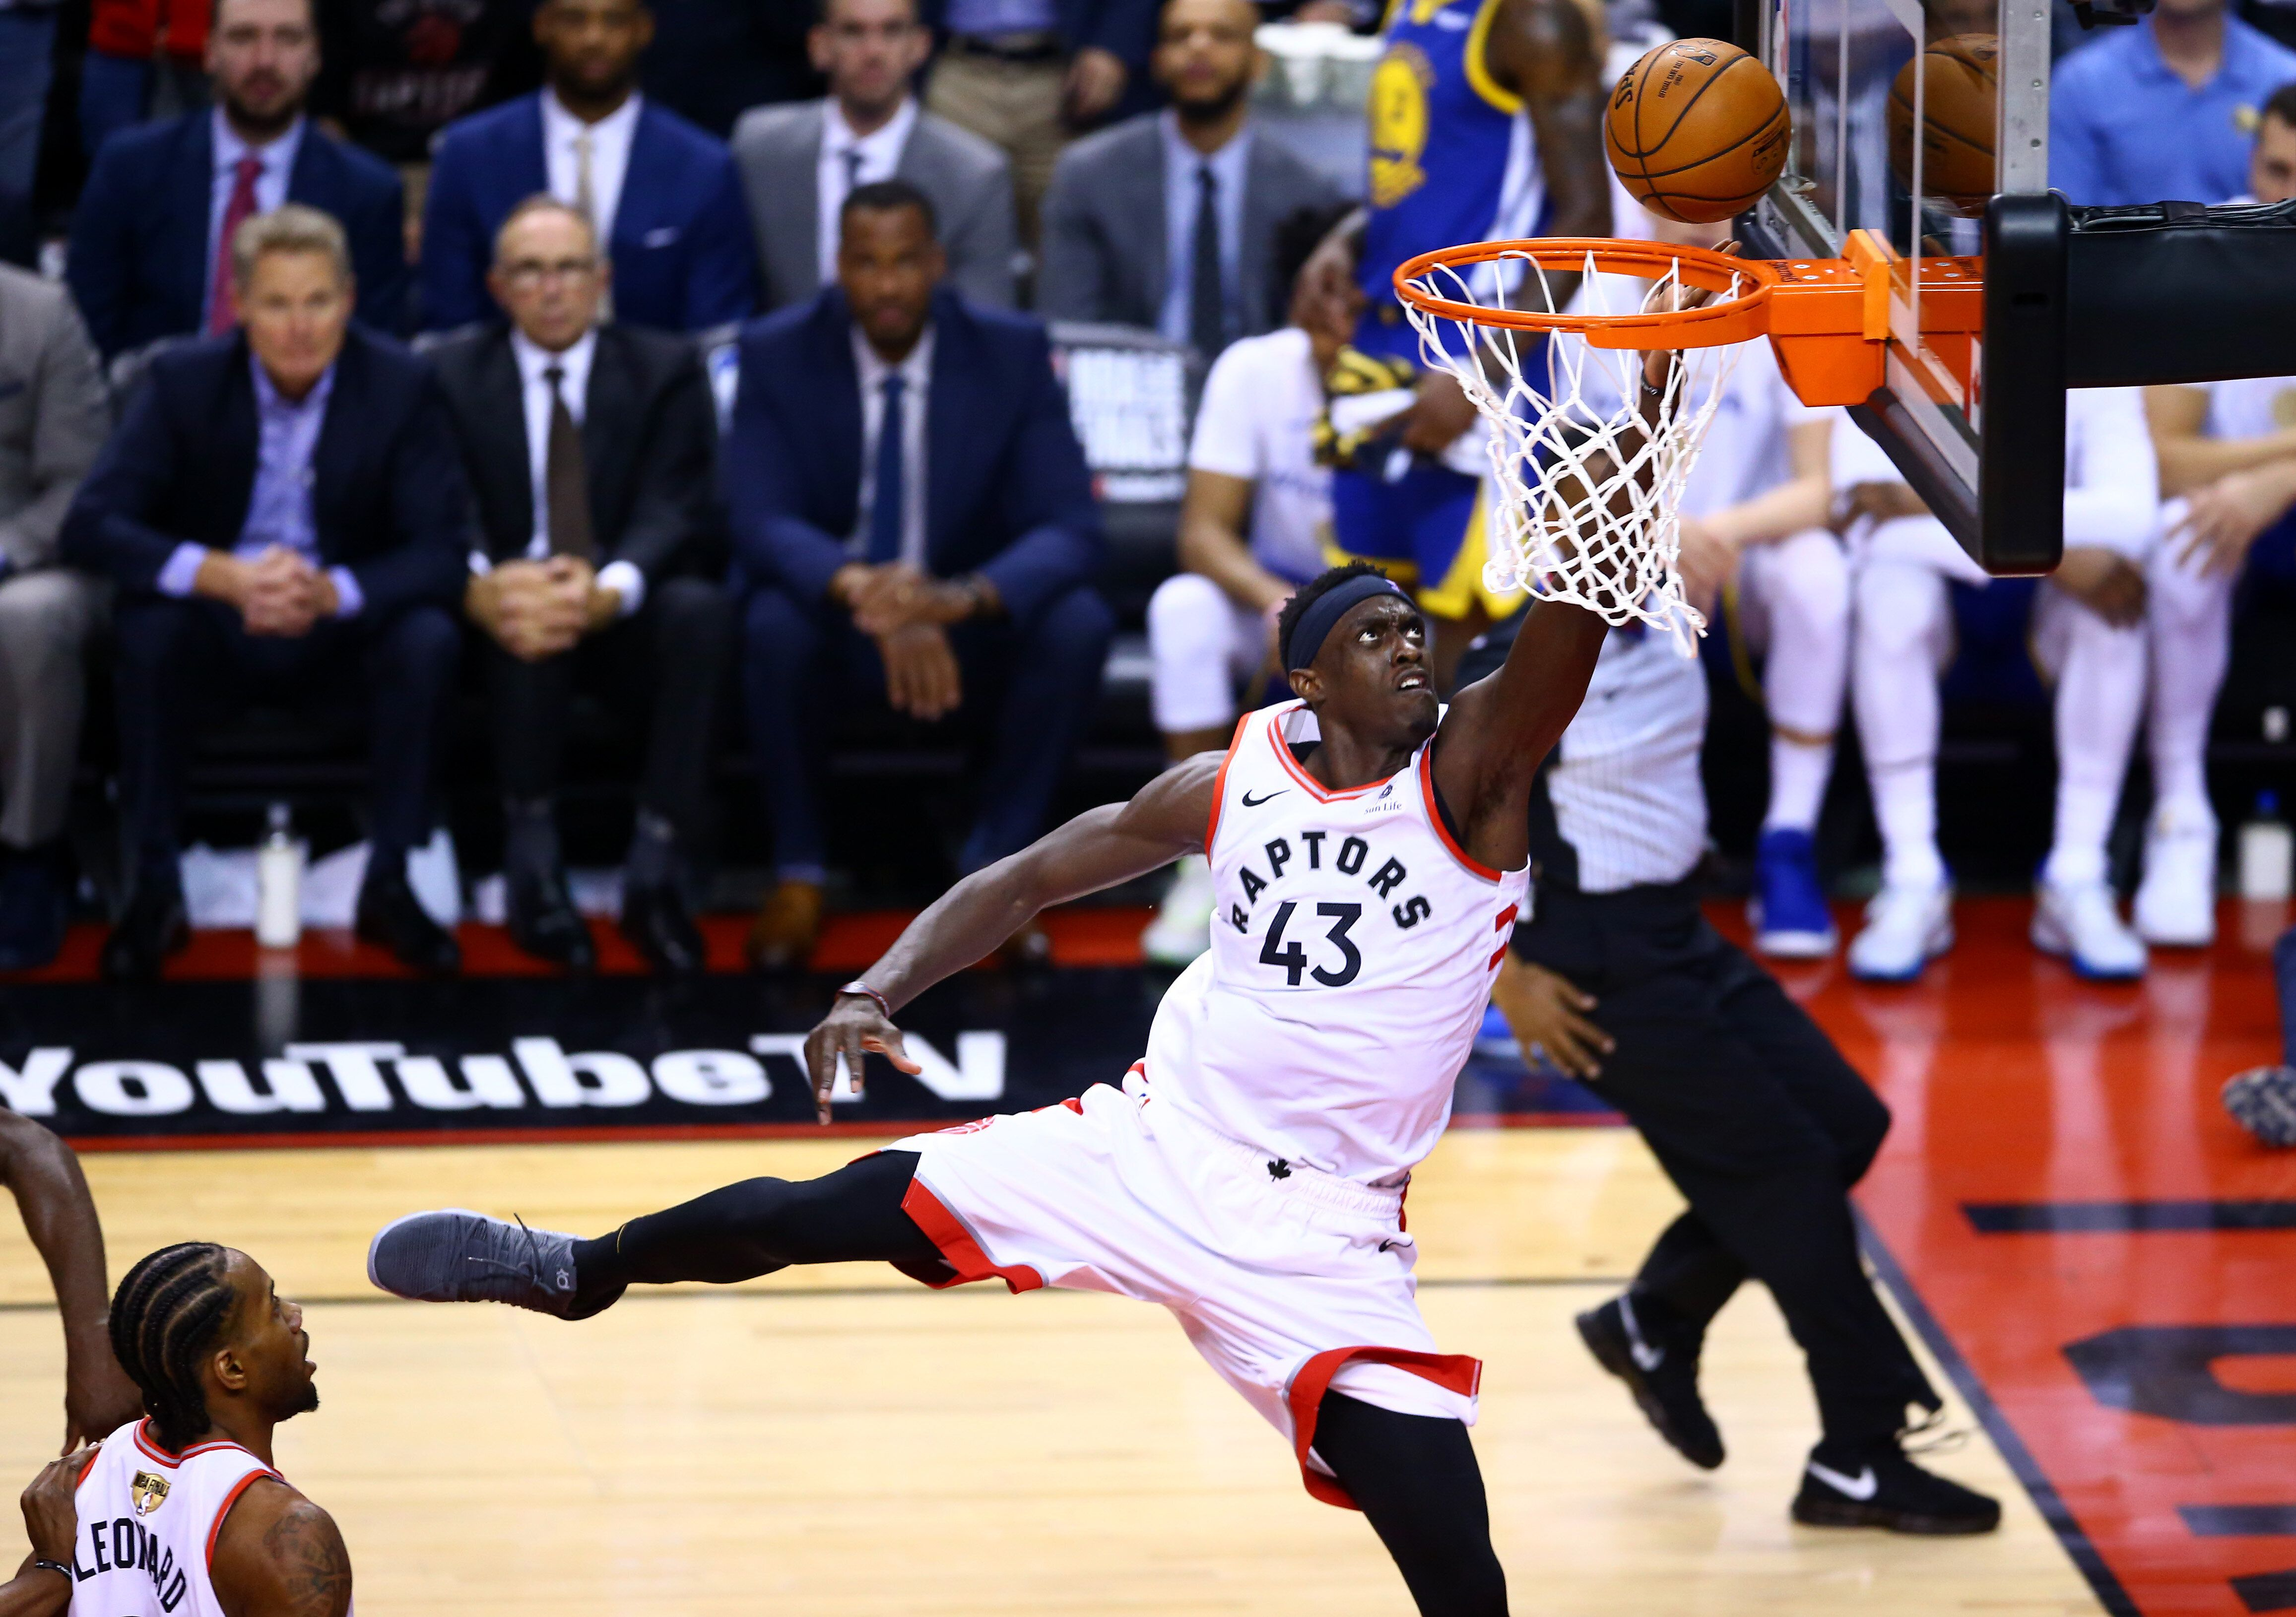 Paskal Siakam was dominant in his NBA Finals debut. (Getty)